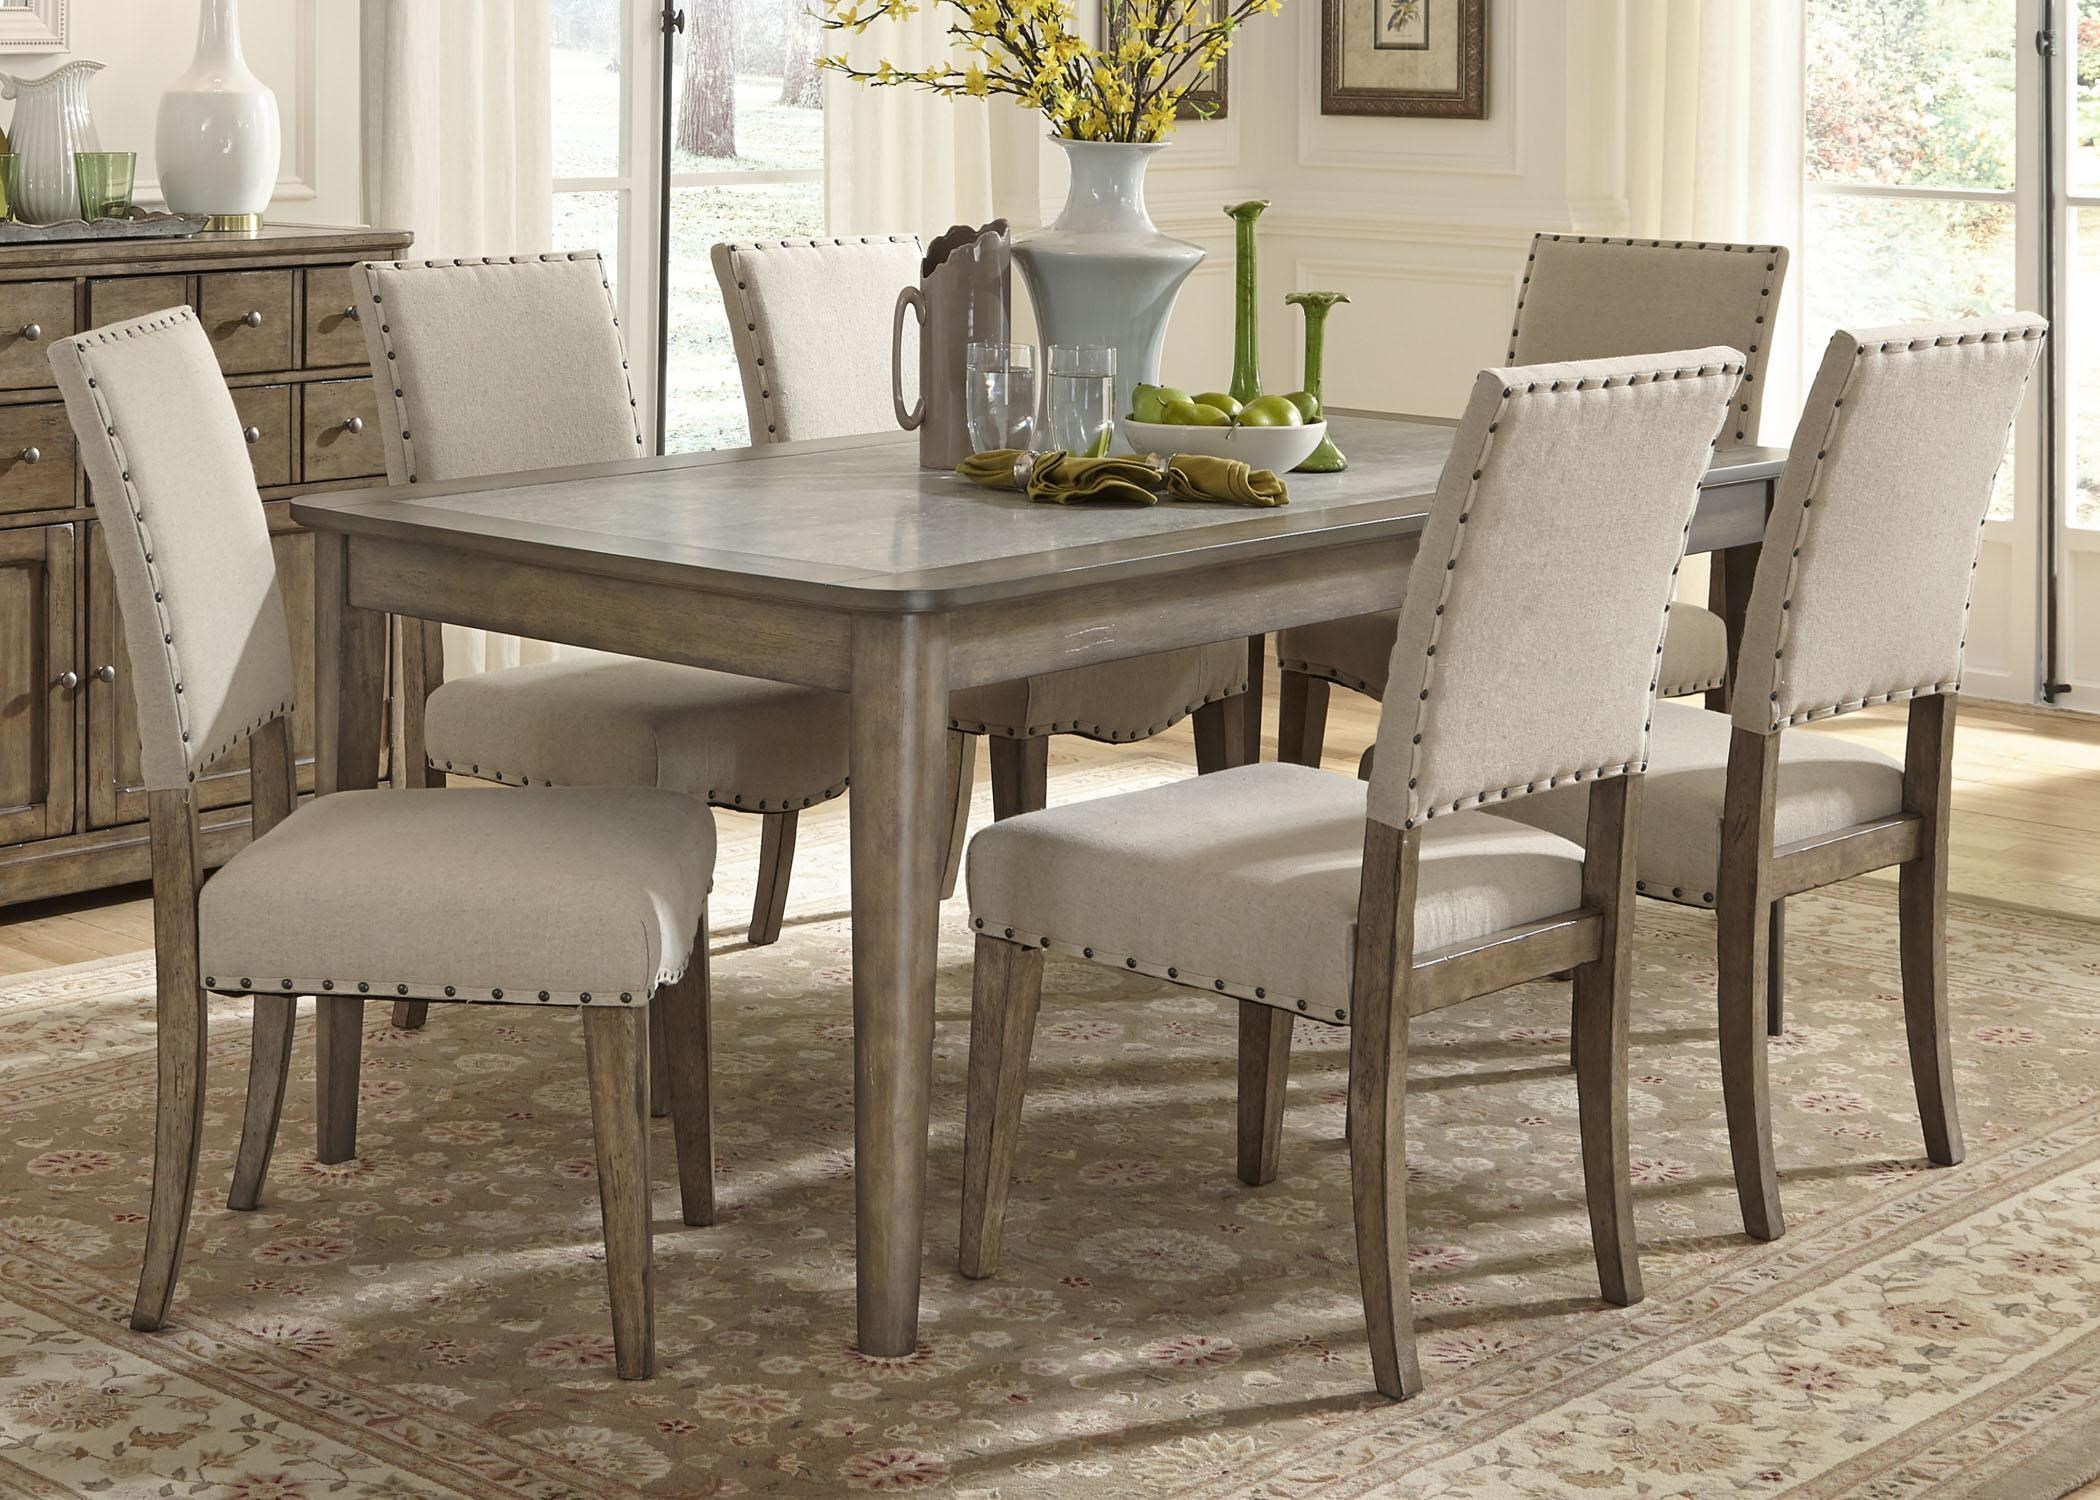 liberty furniture casual rustic piece dining table chairs set 9 3 4